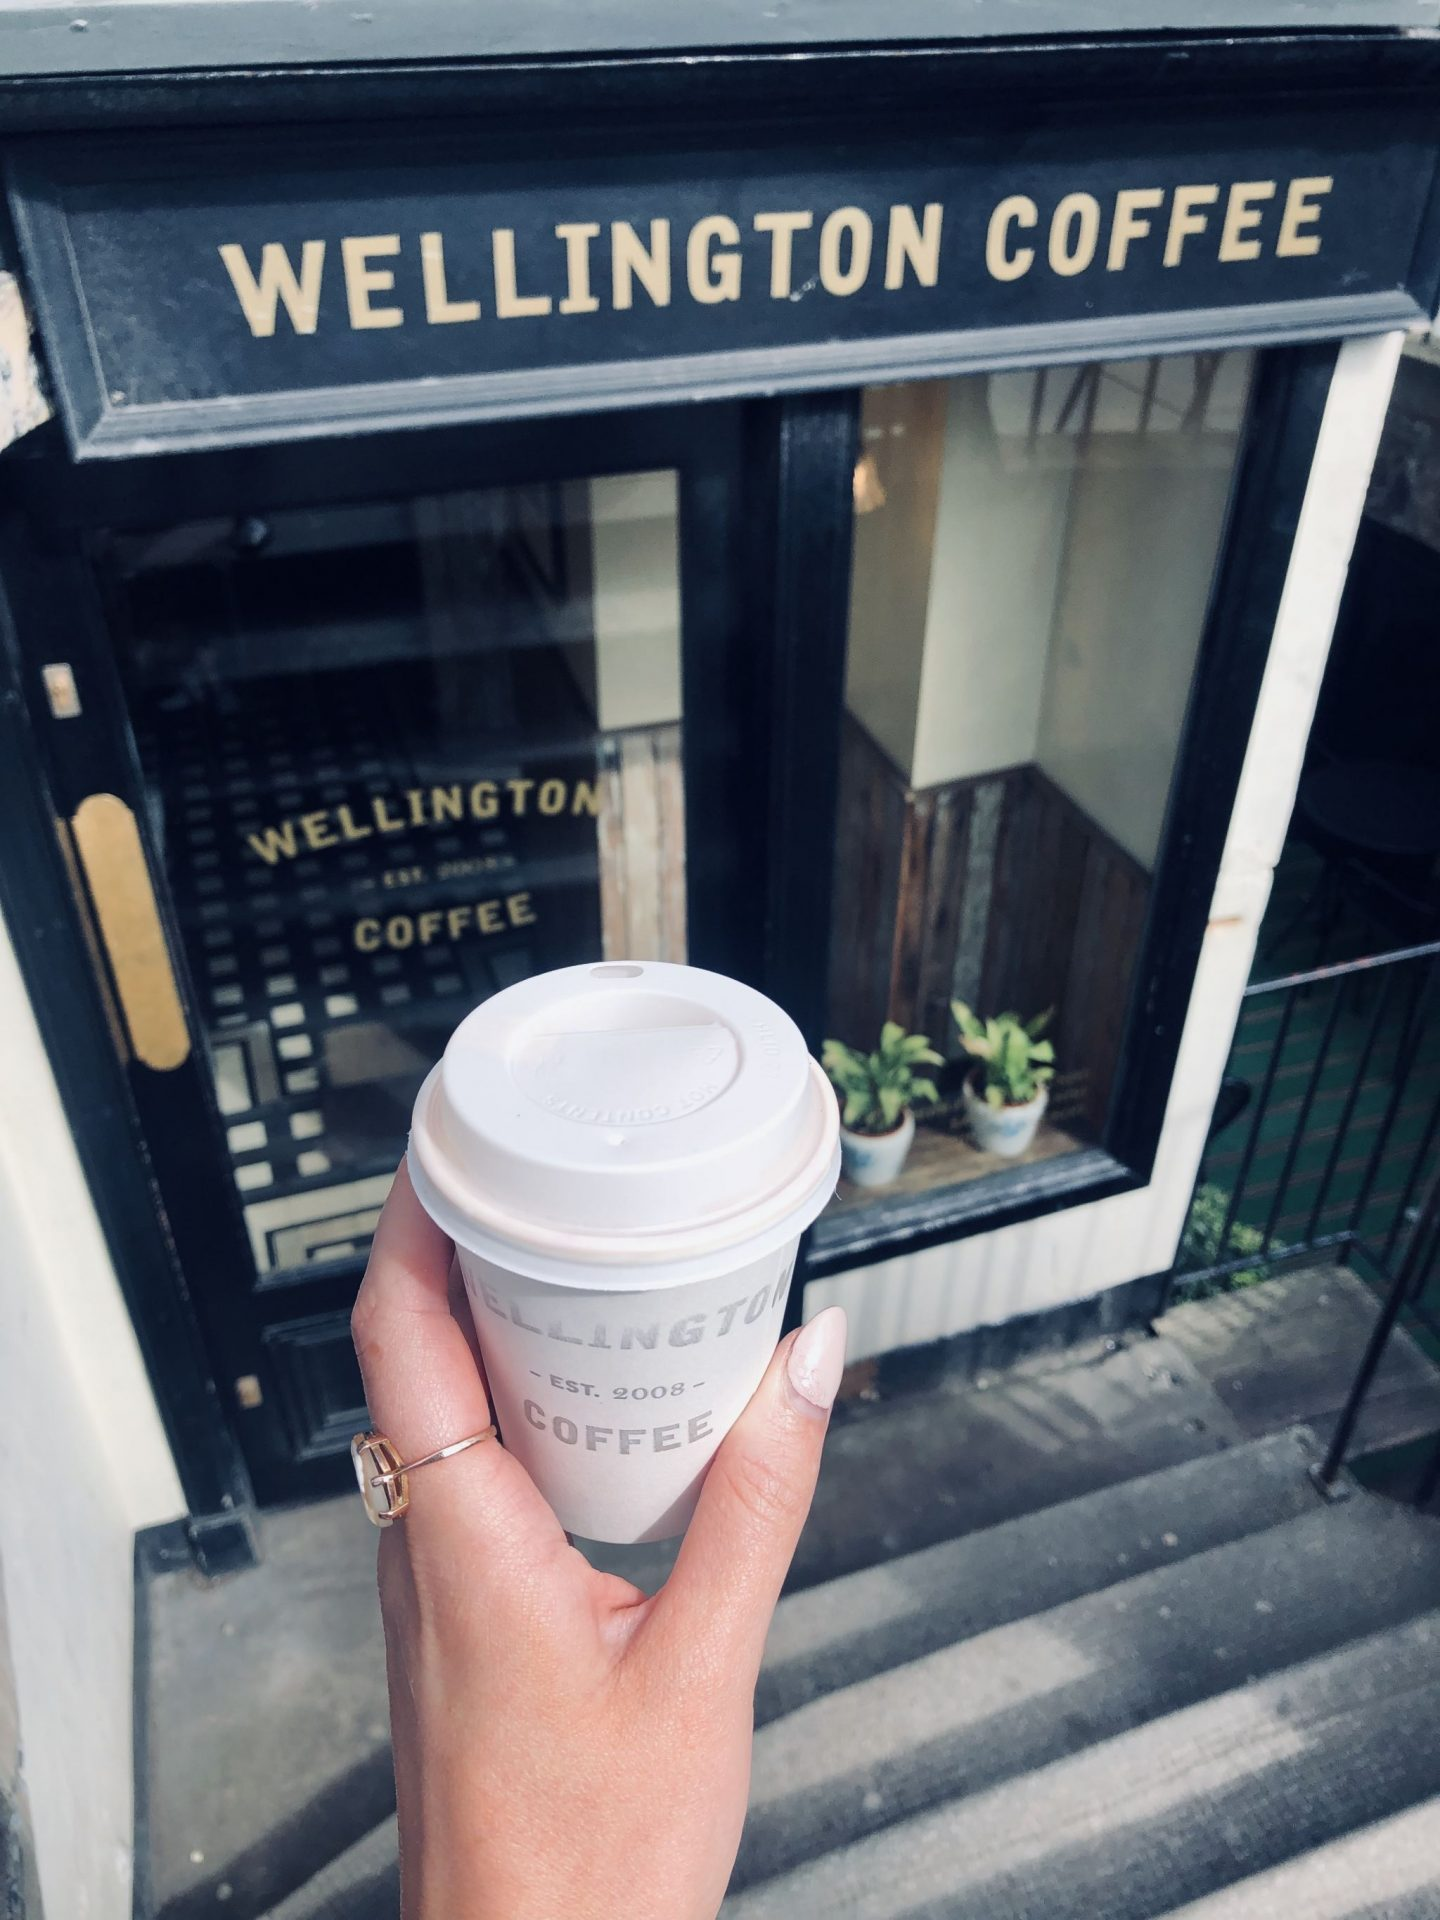 WELLINGTON COFFEE